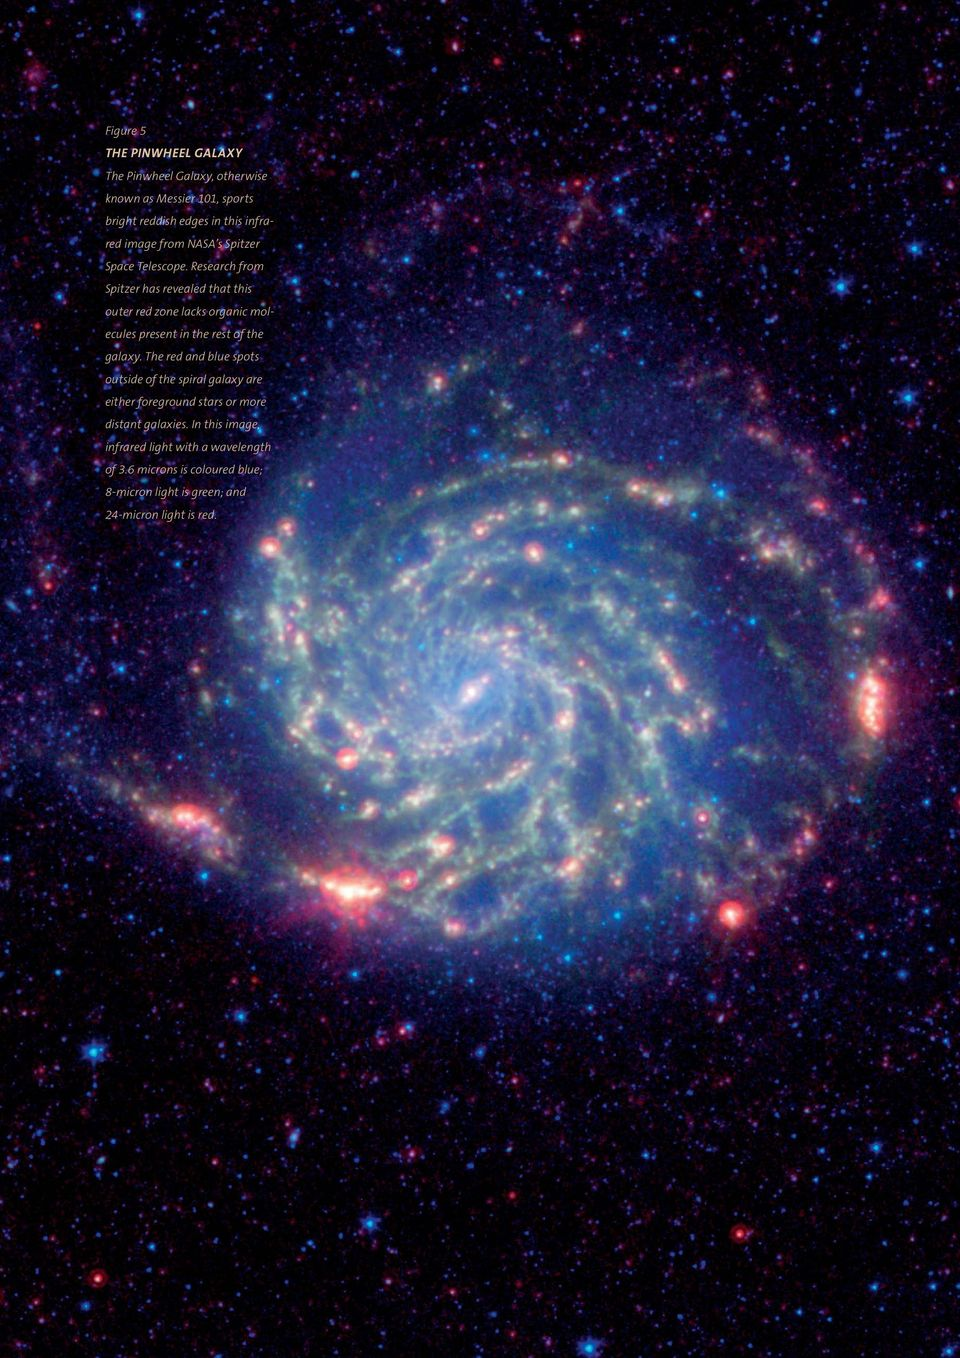 Research from Spitzer has revealed that this outer red zone lacks organic molecules present in the rest of the galaxy.